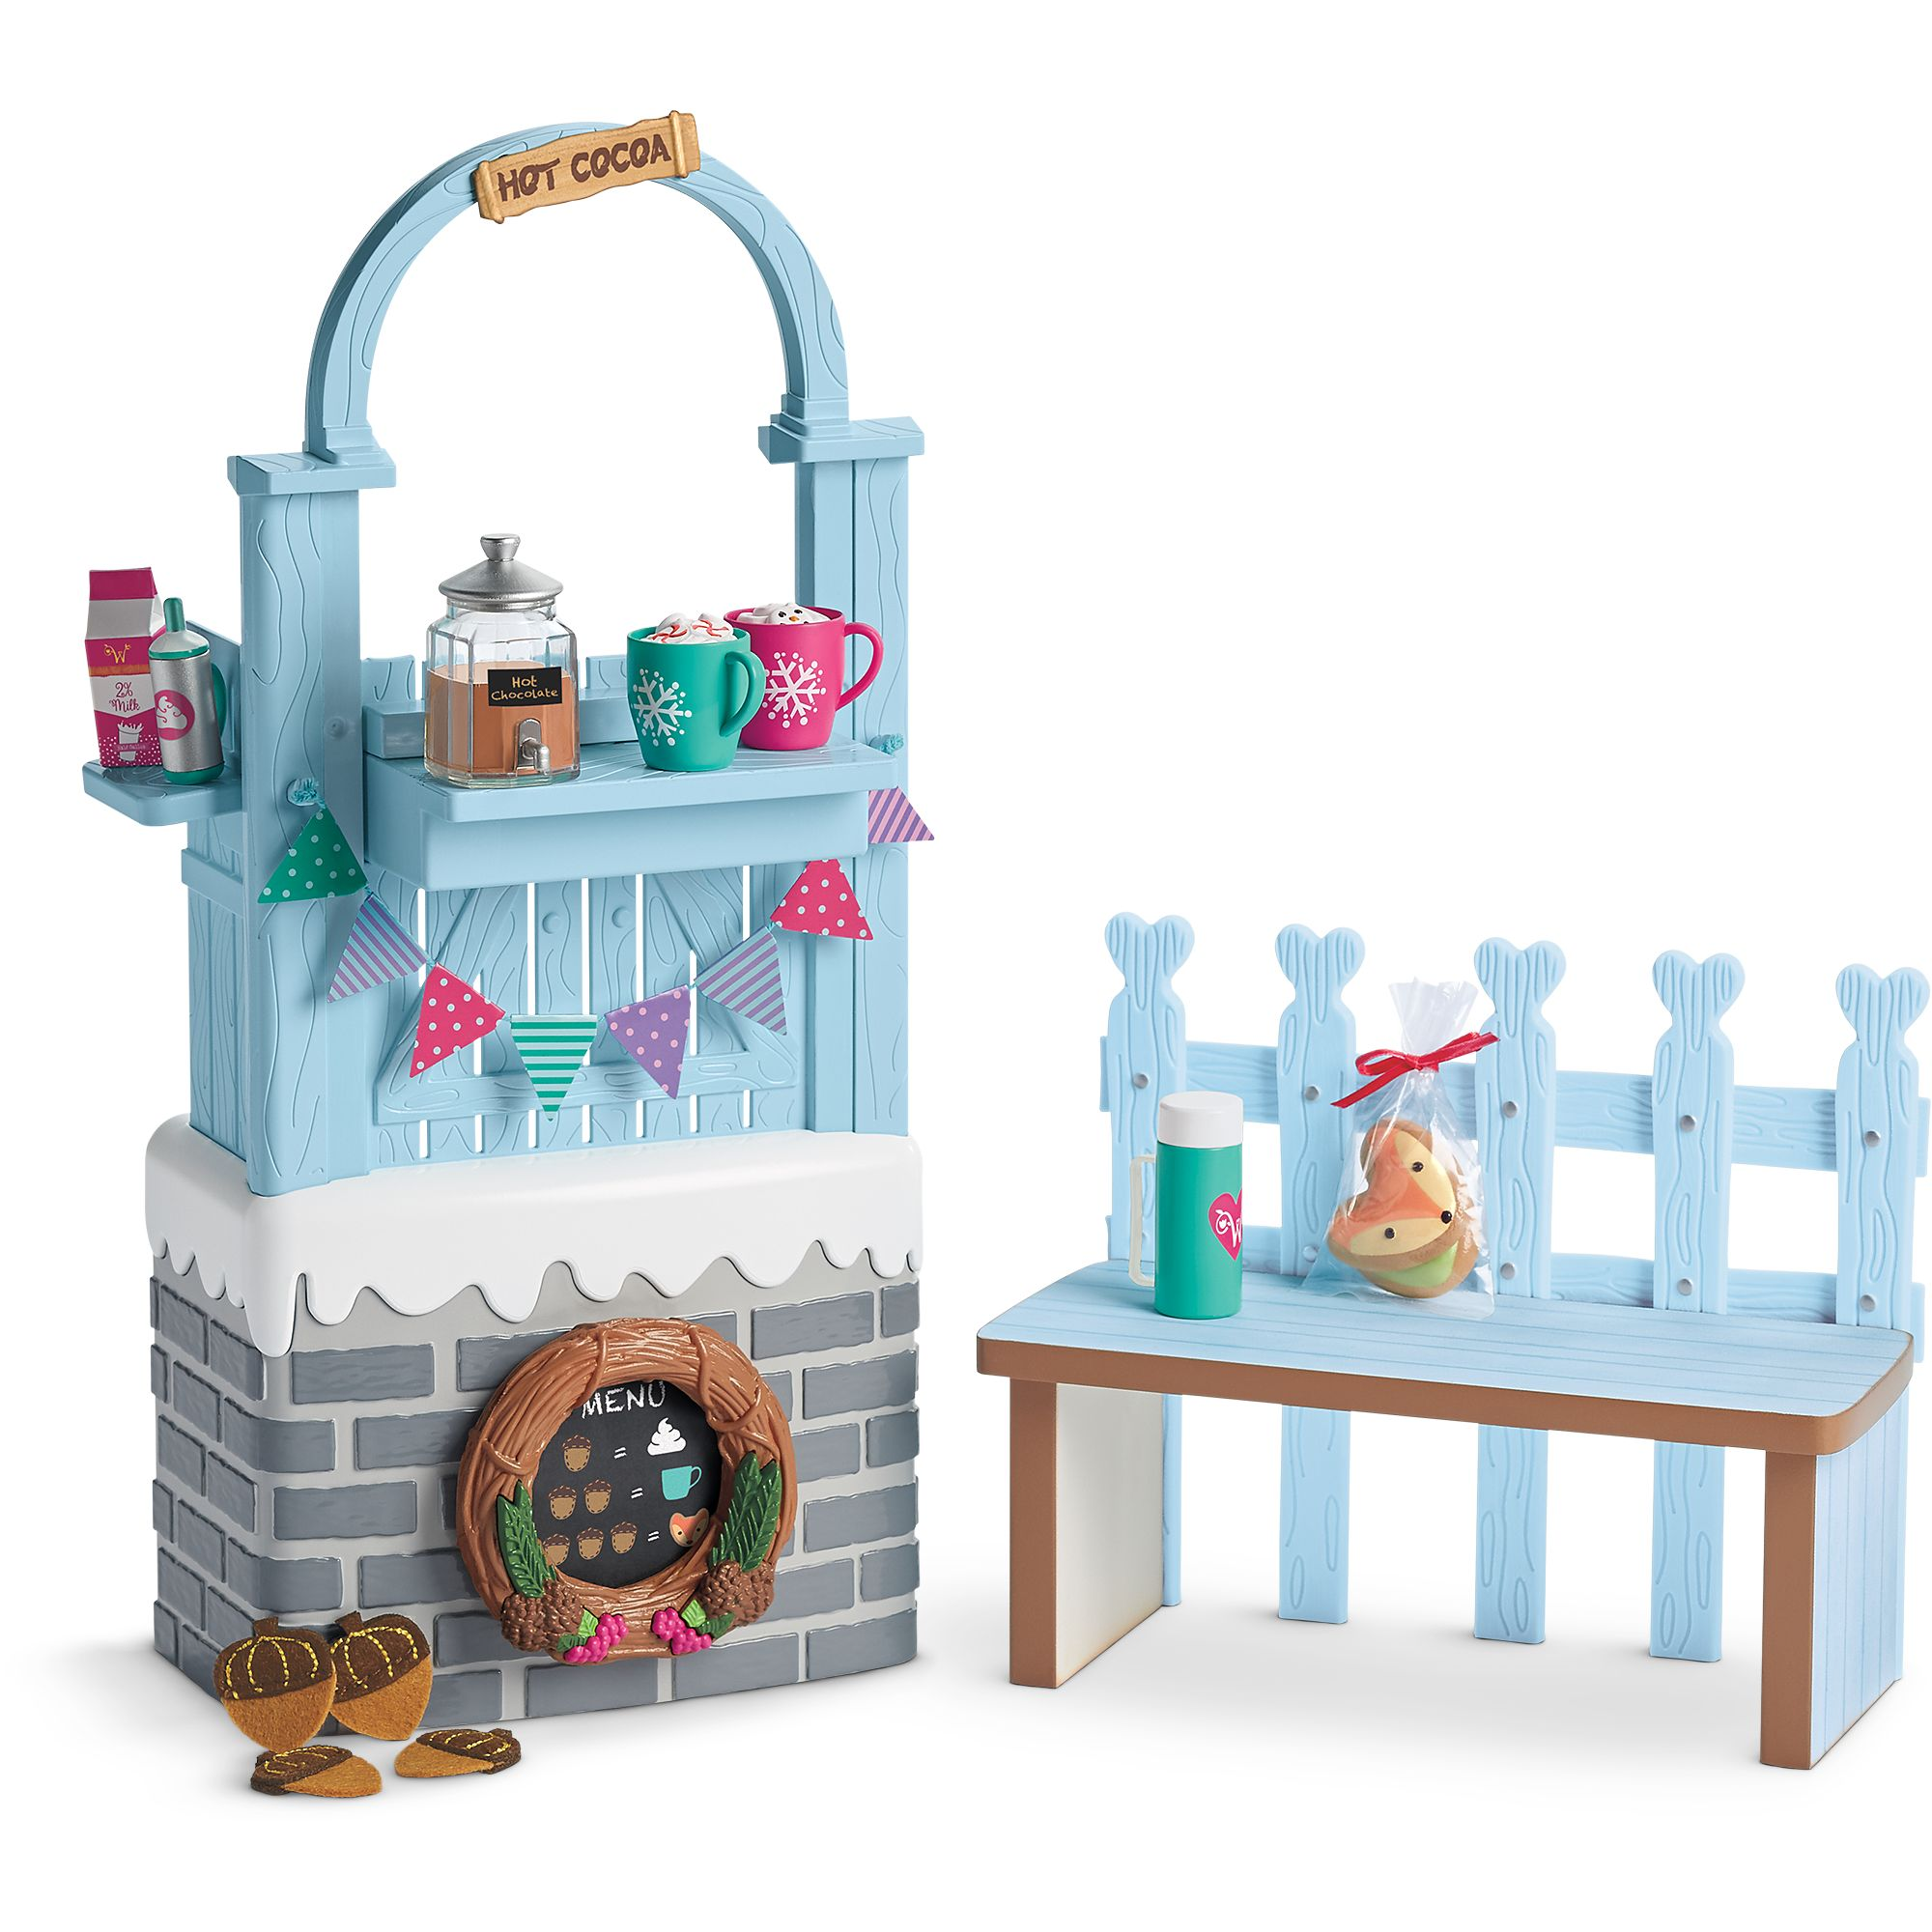 Cozy Up Cocoa Stand